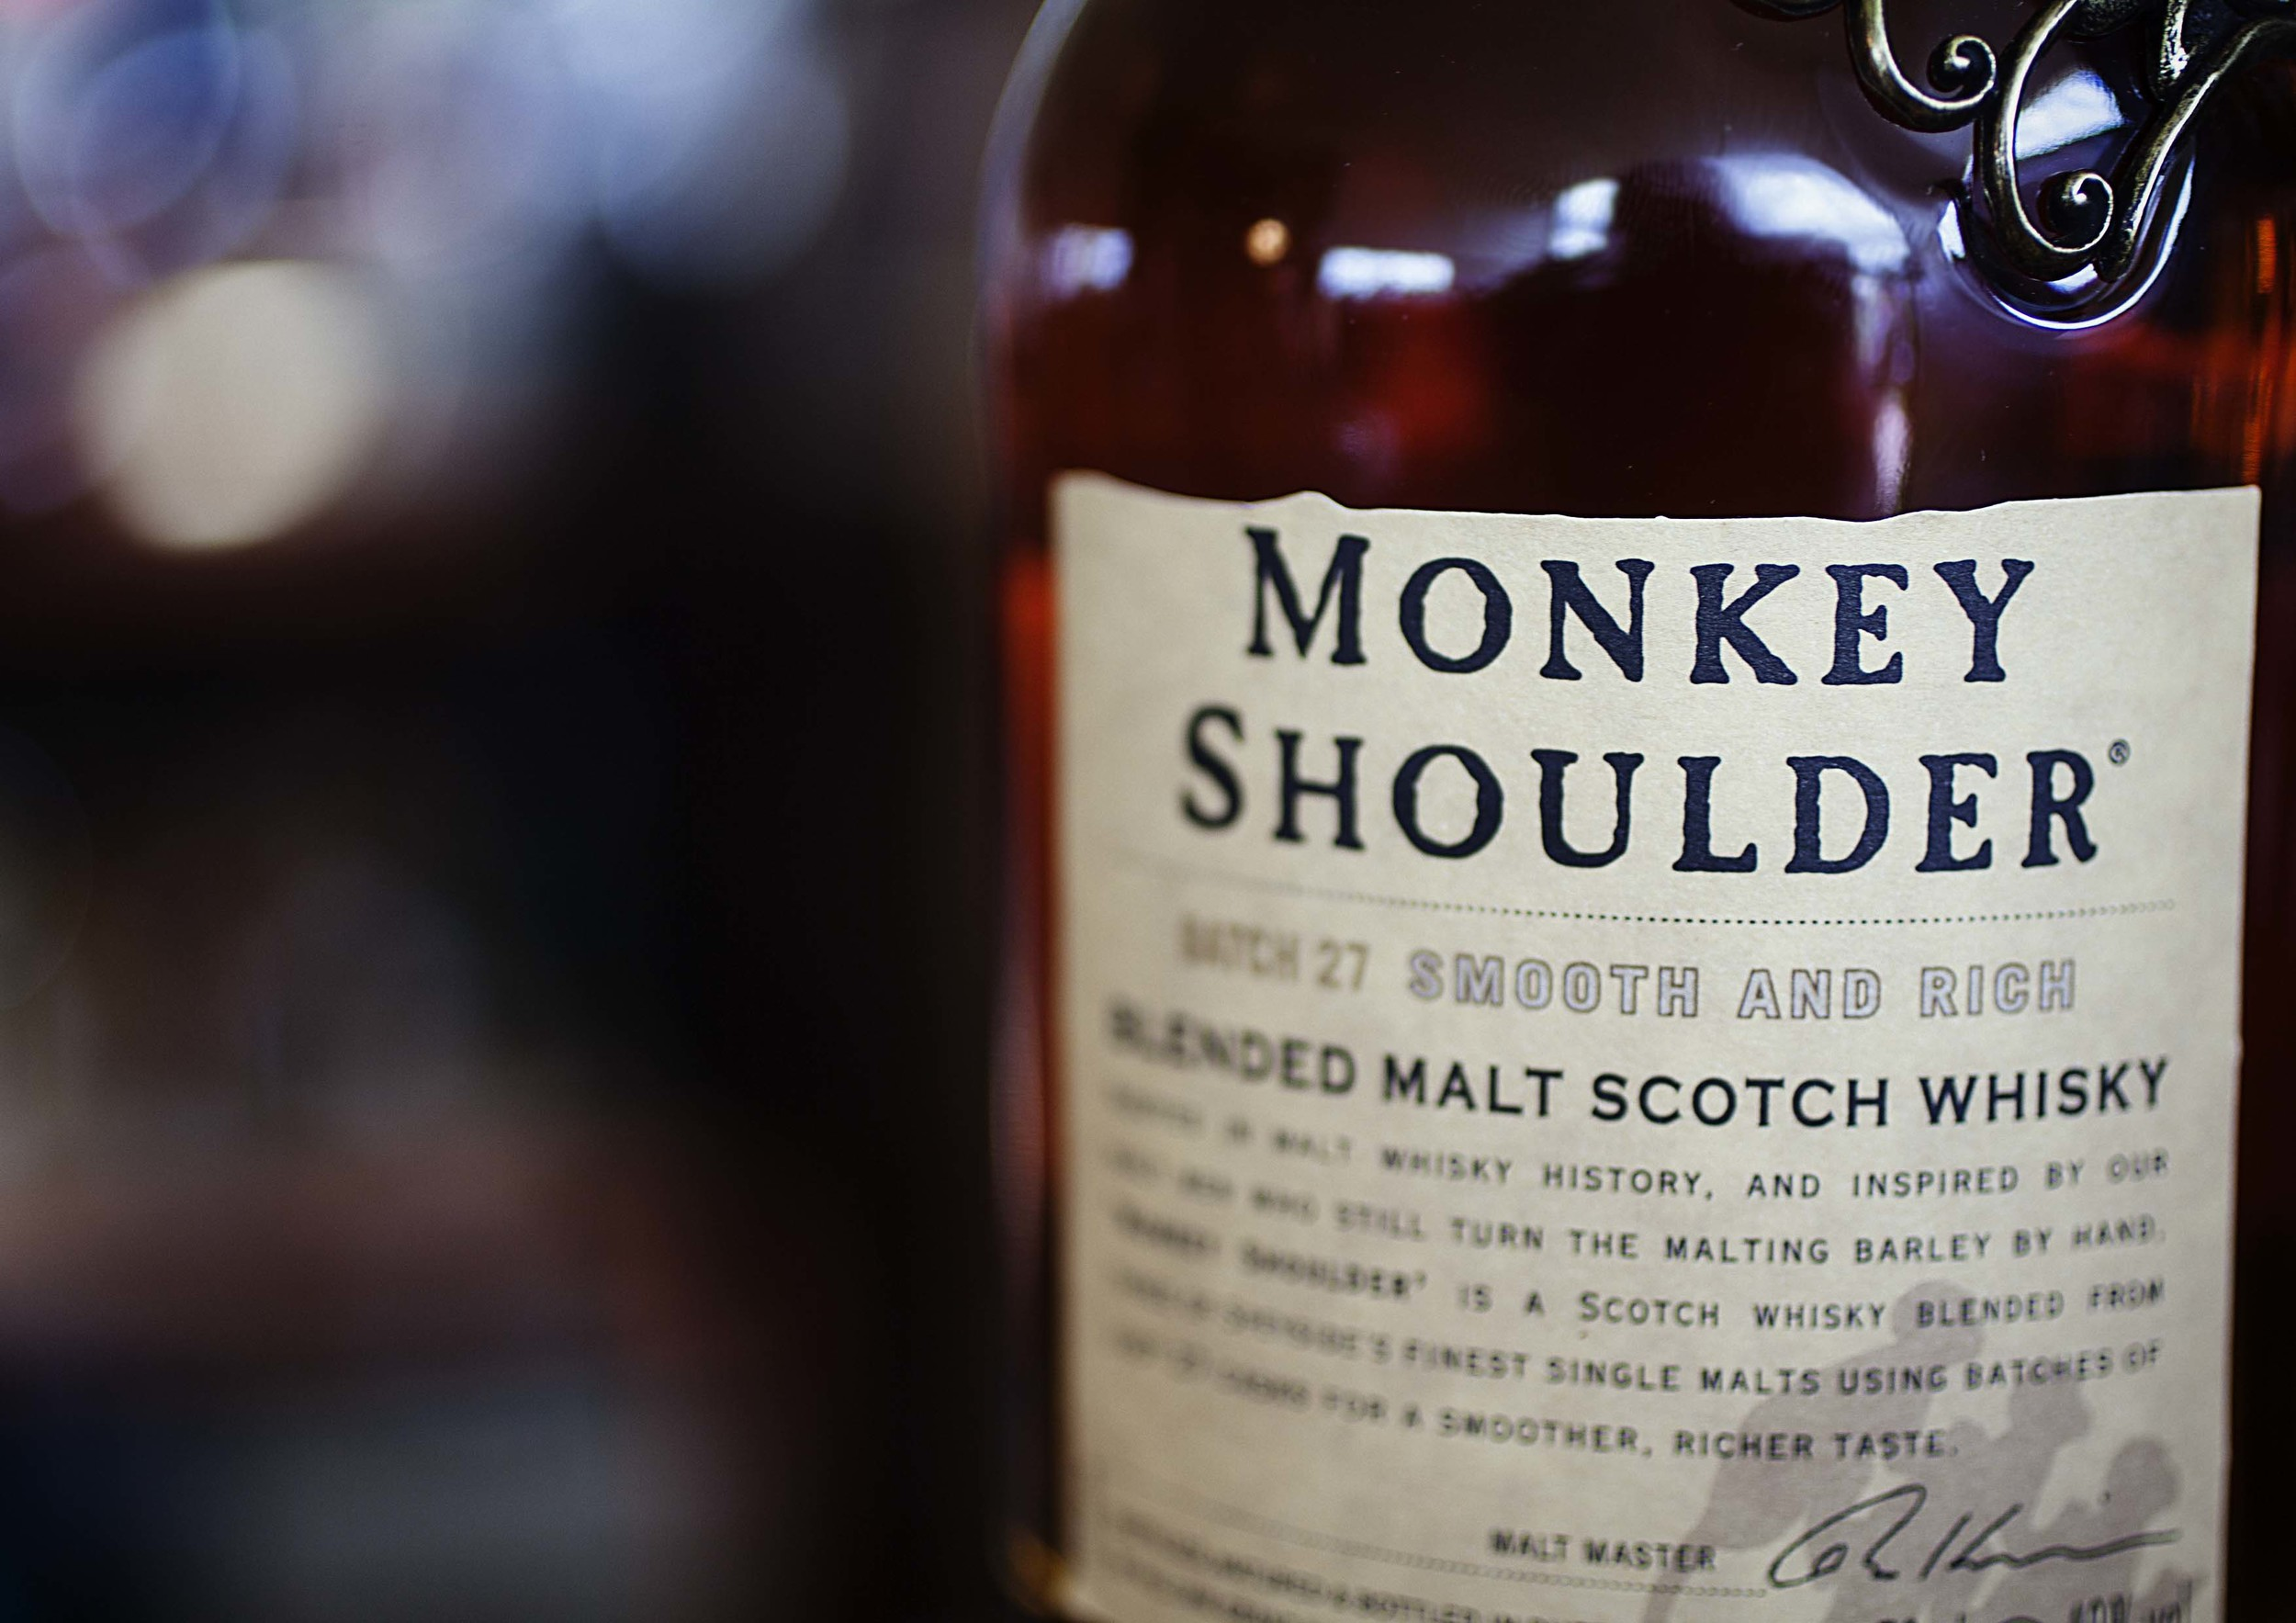 Were you at Foodies? Did you try a Monkey Shoulder?